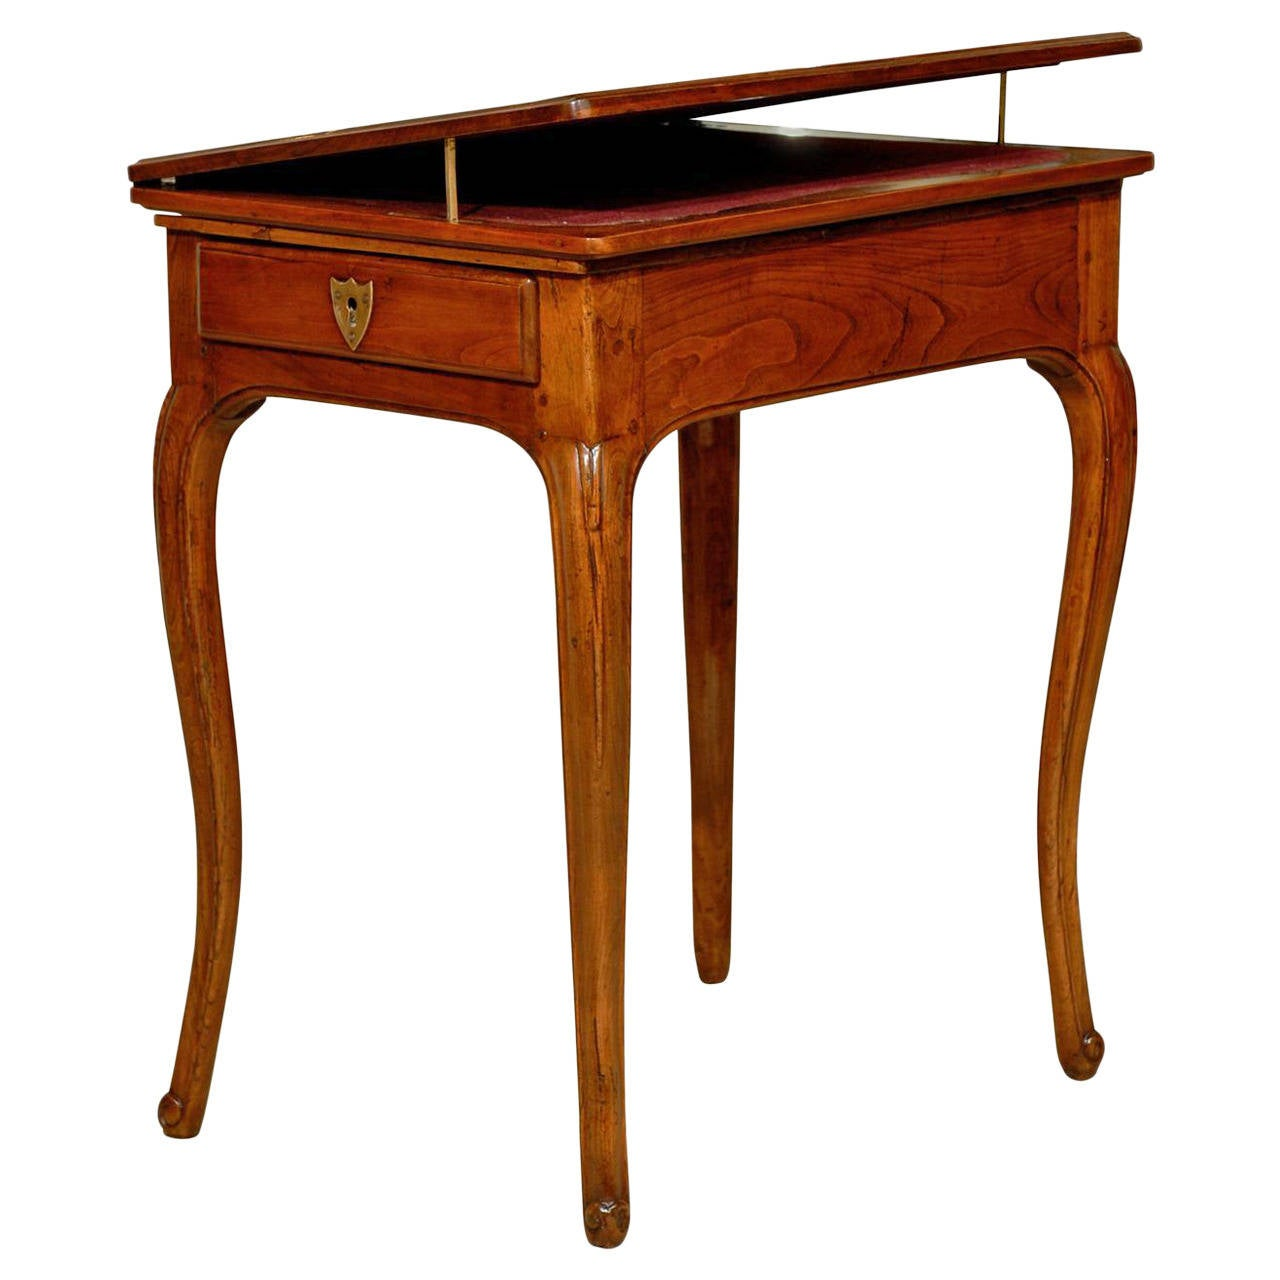 18th century louis xv drafting or game table for sale at 1stdibs - Table louis xv ...